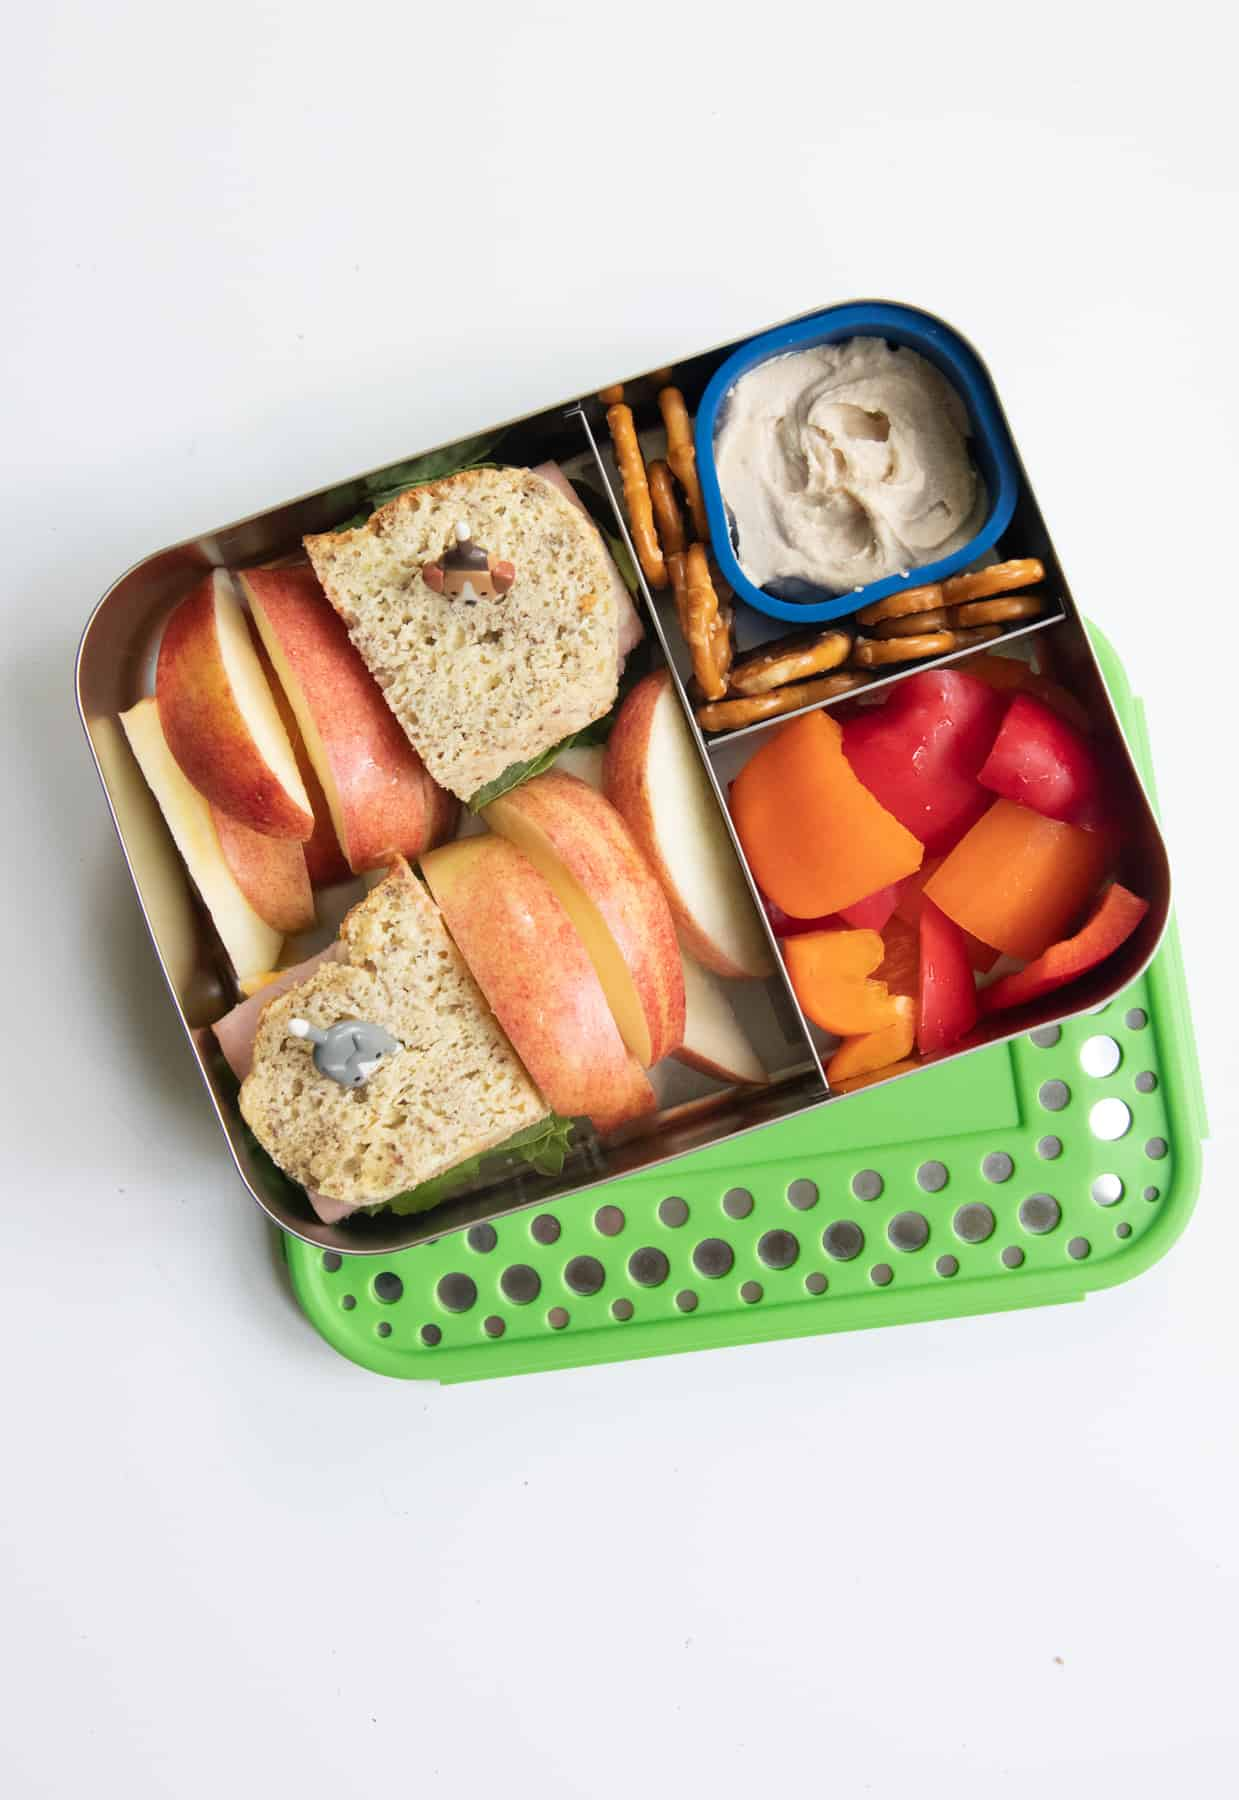 Stainless steel lunch box with a sandwich, apple slices, peppers, and pretzels with hummus.